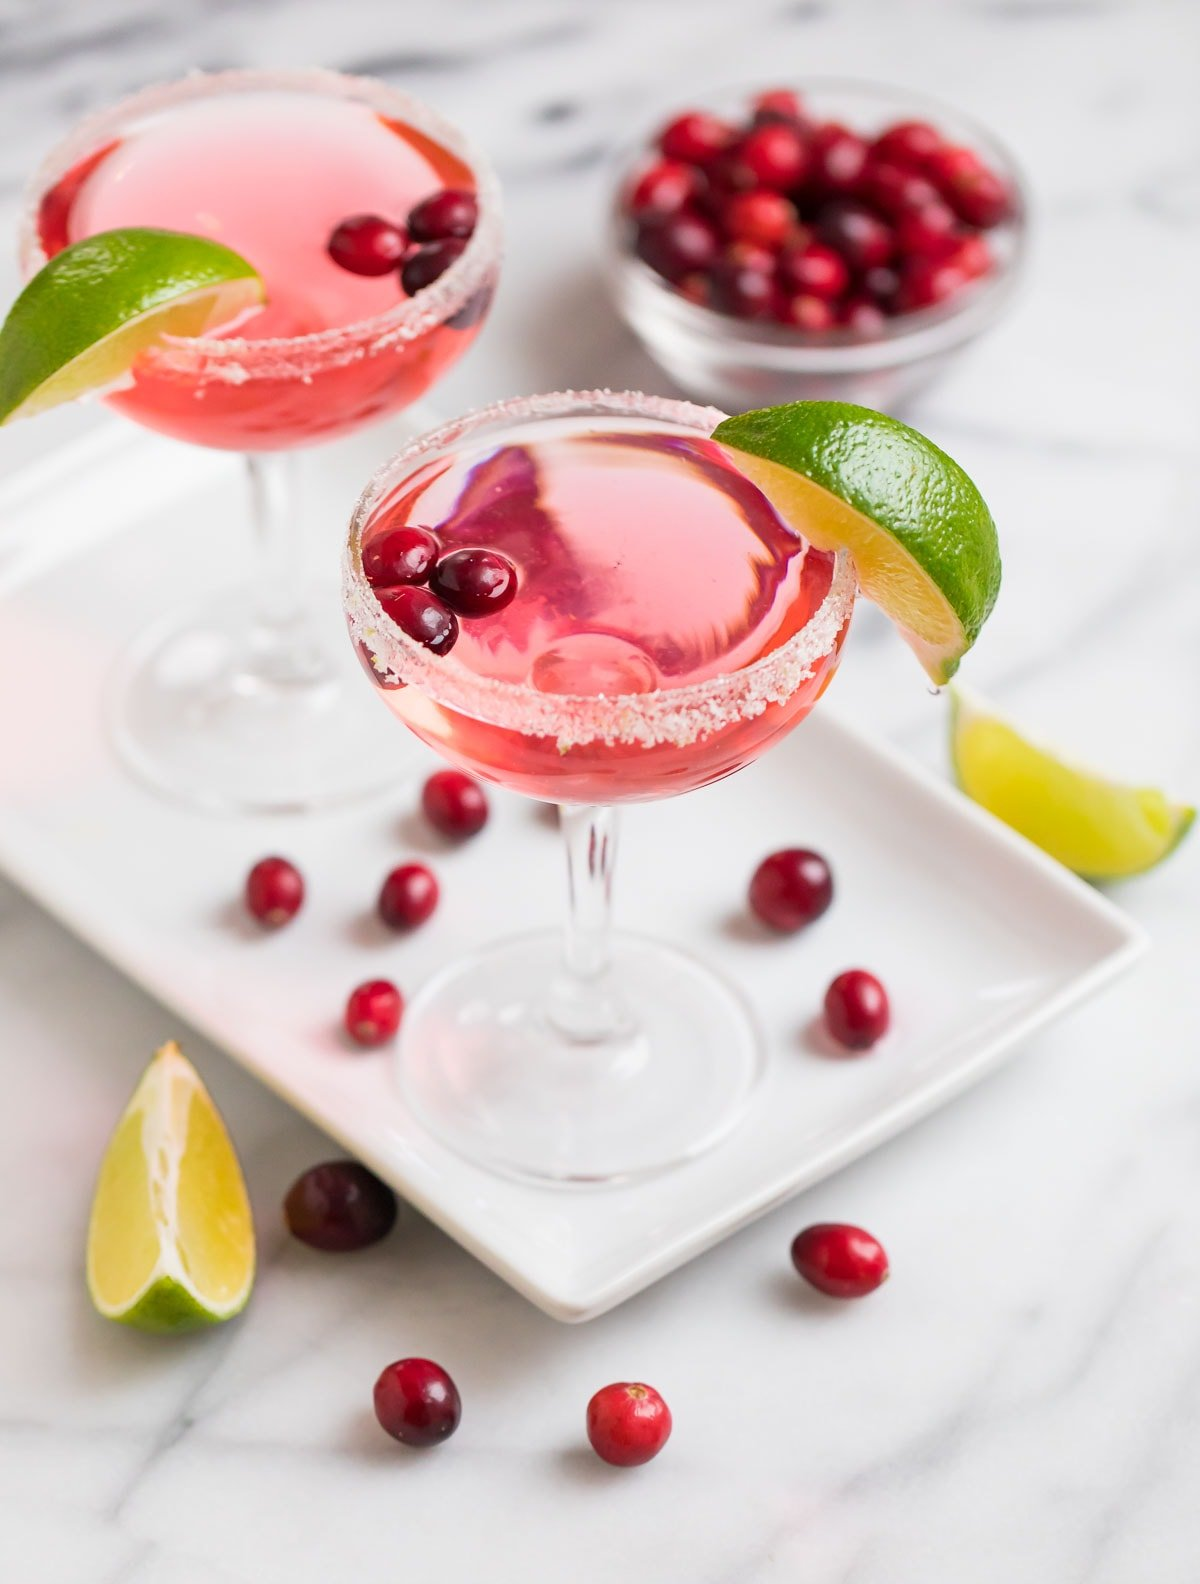 Delicious cranberry St. Germain cocktails on a plate with lime slices and cranberries